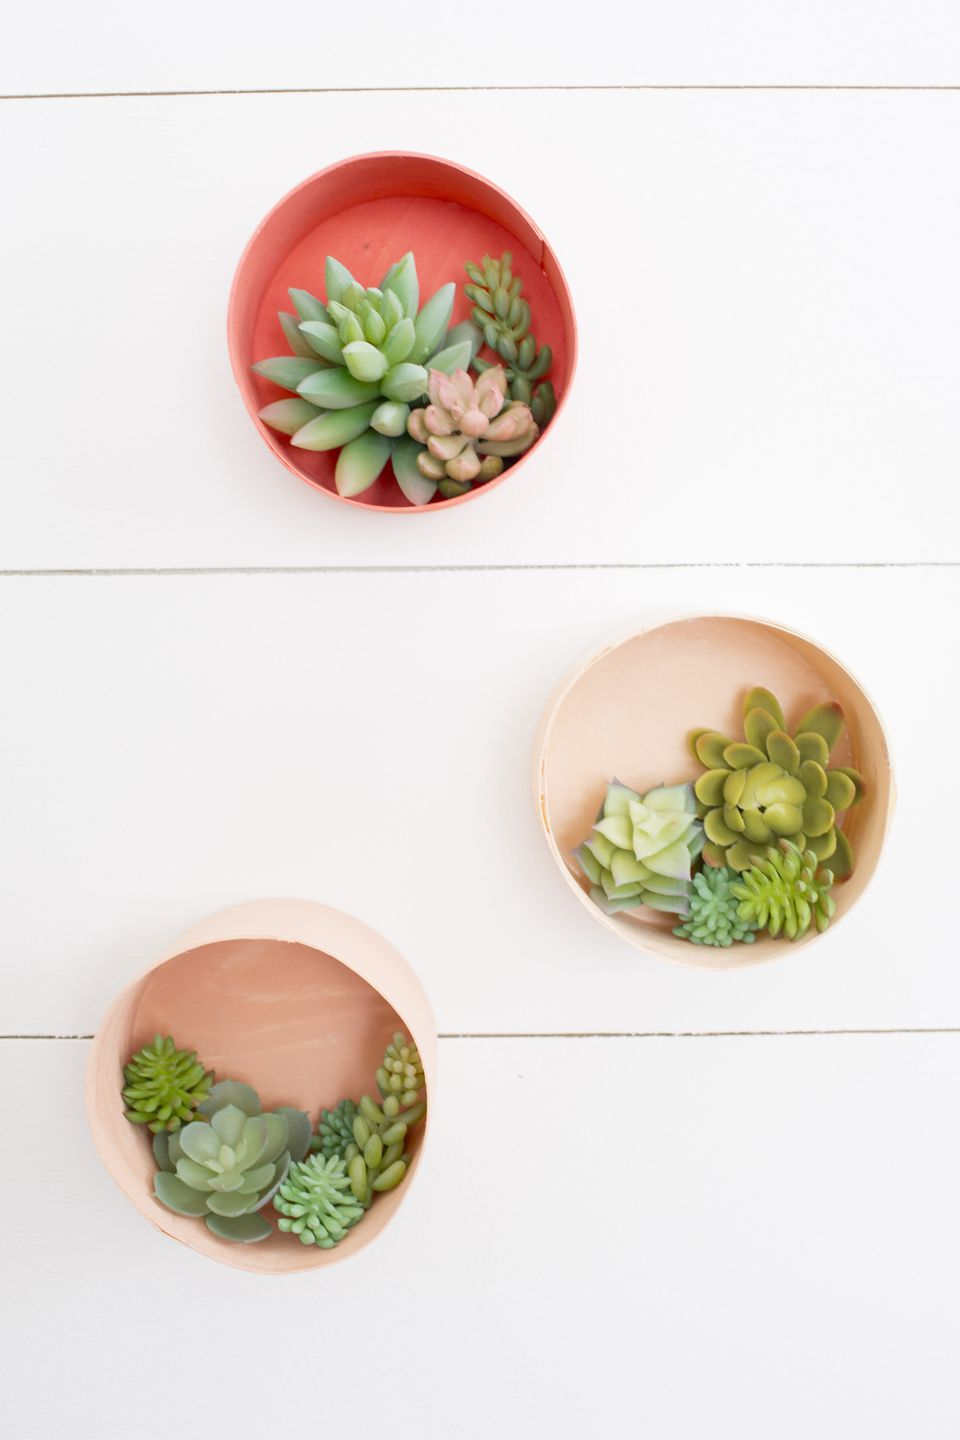 How to Make Faux Succulent Hangers